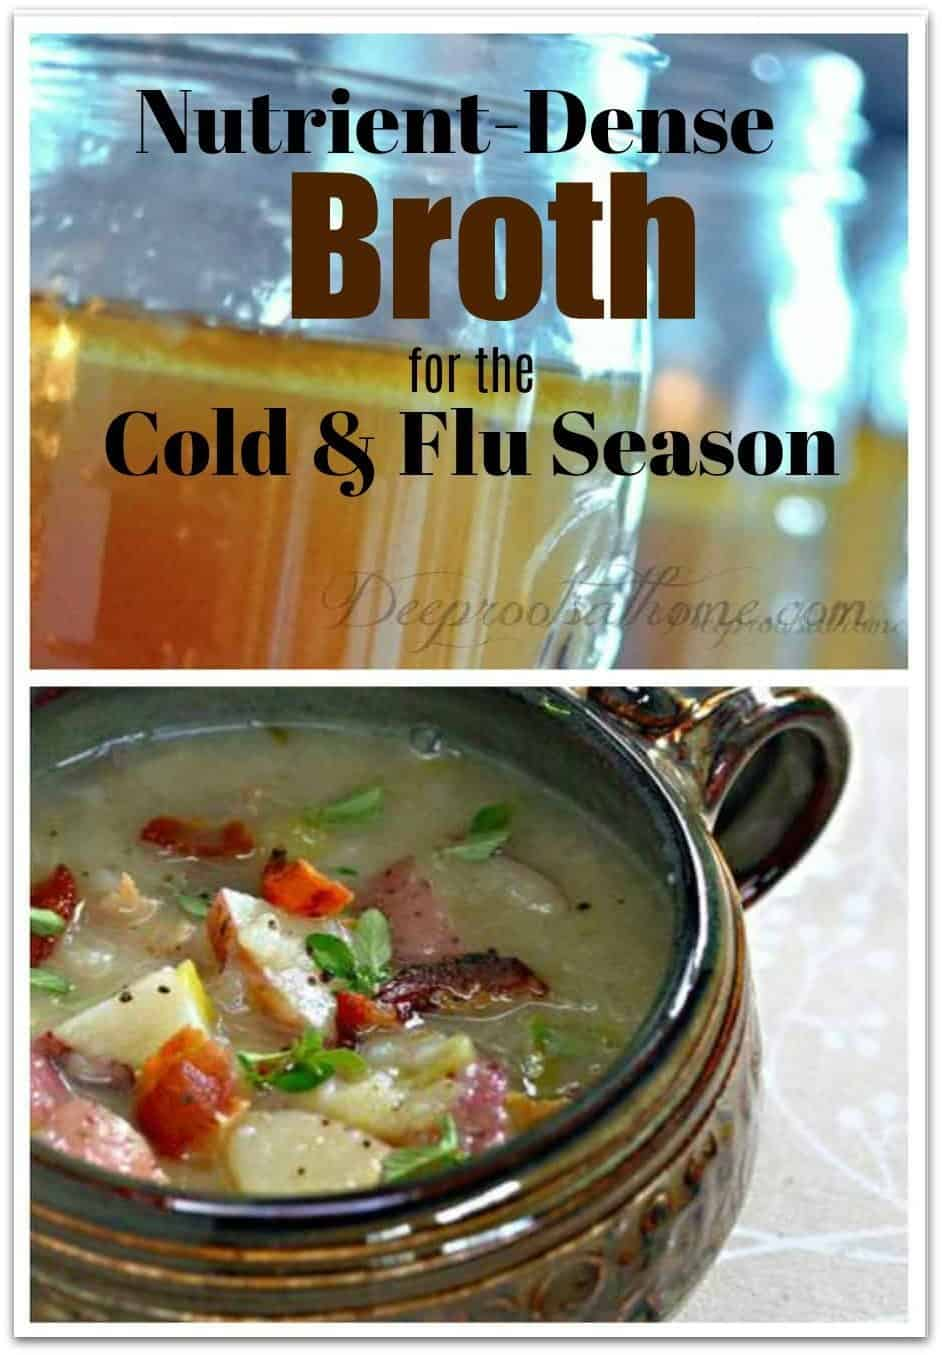 Beautiful Nutrient-Dense Broth For Cold & Flu Season. bottled homemade broth